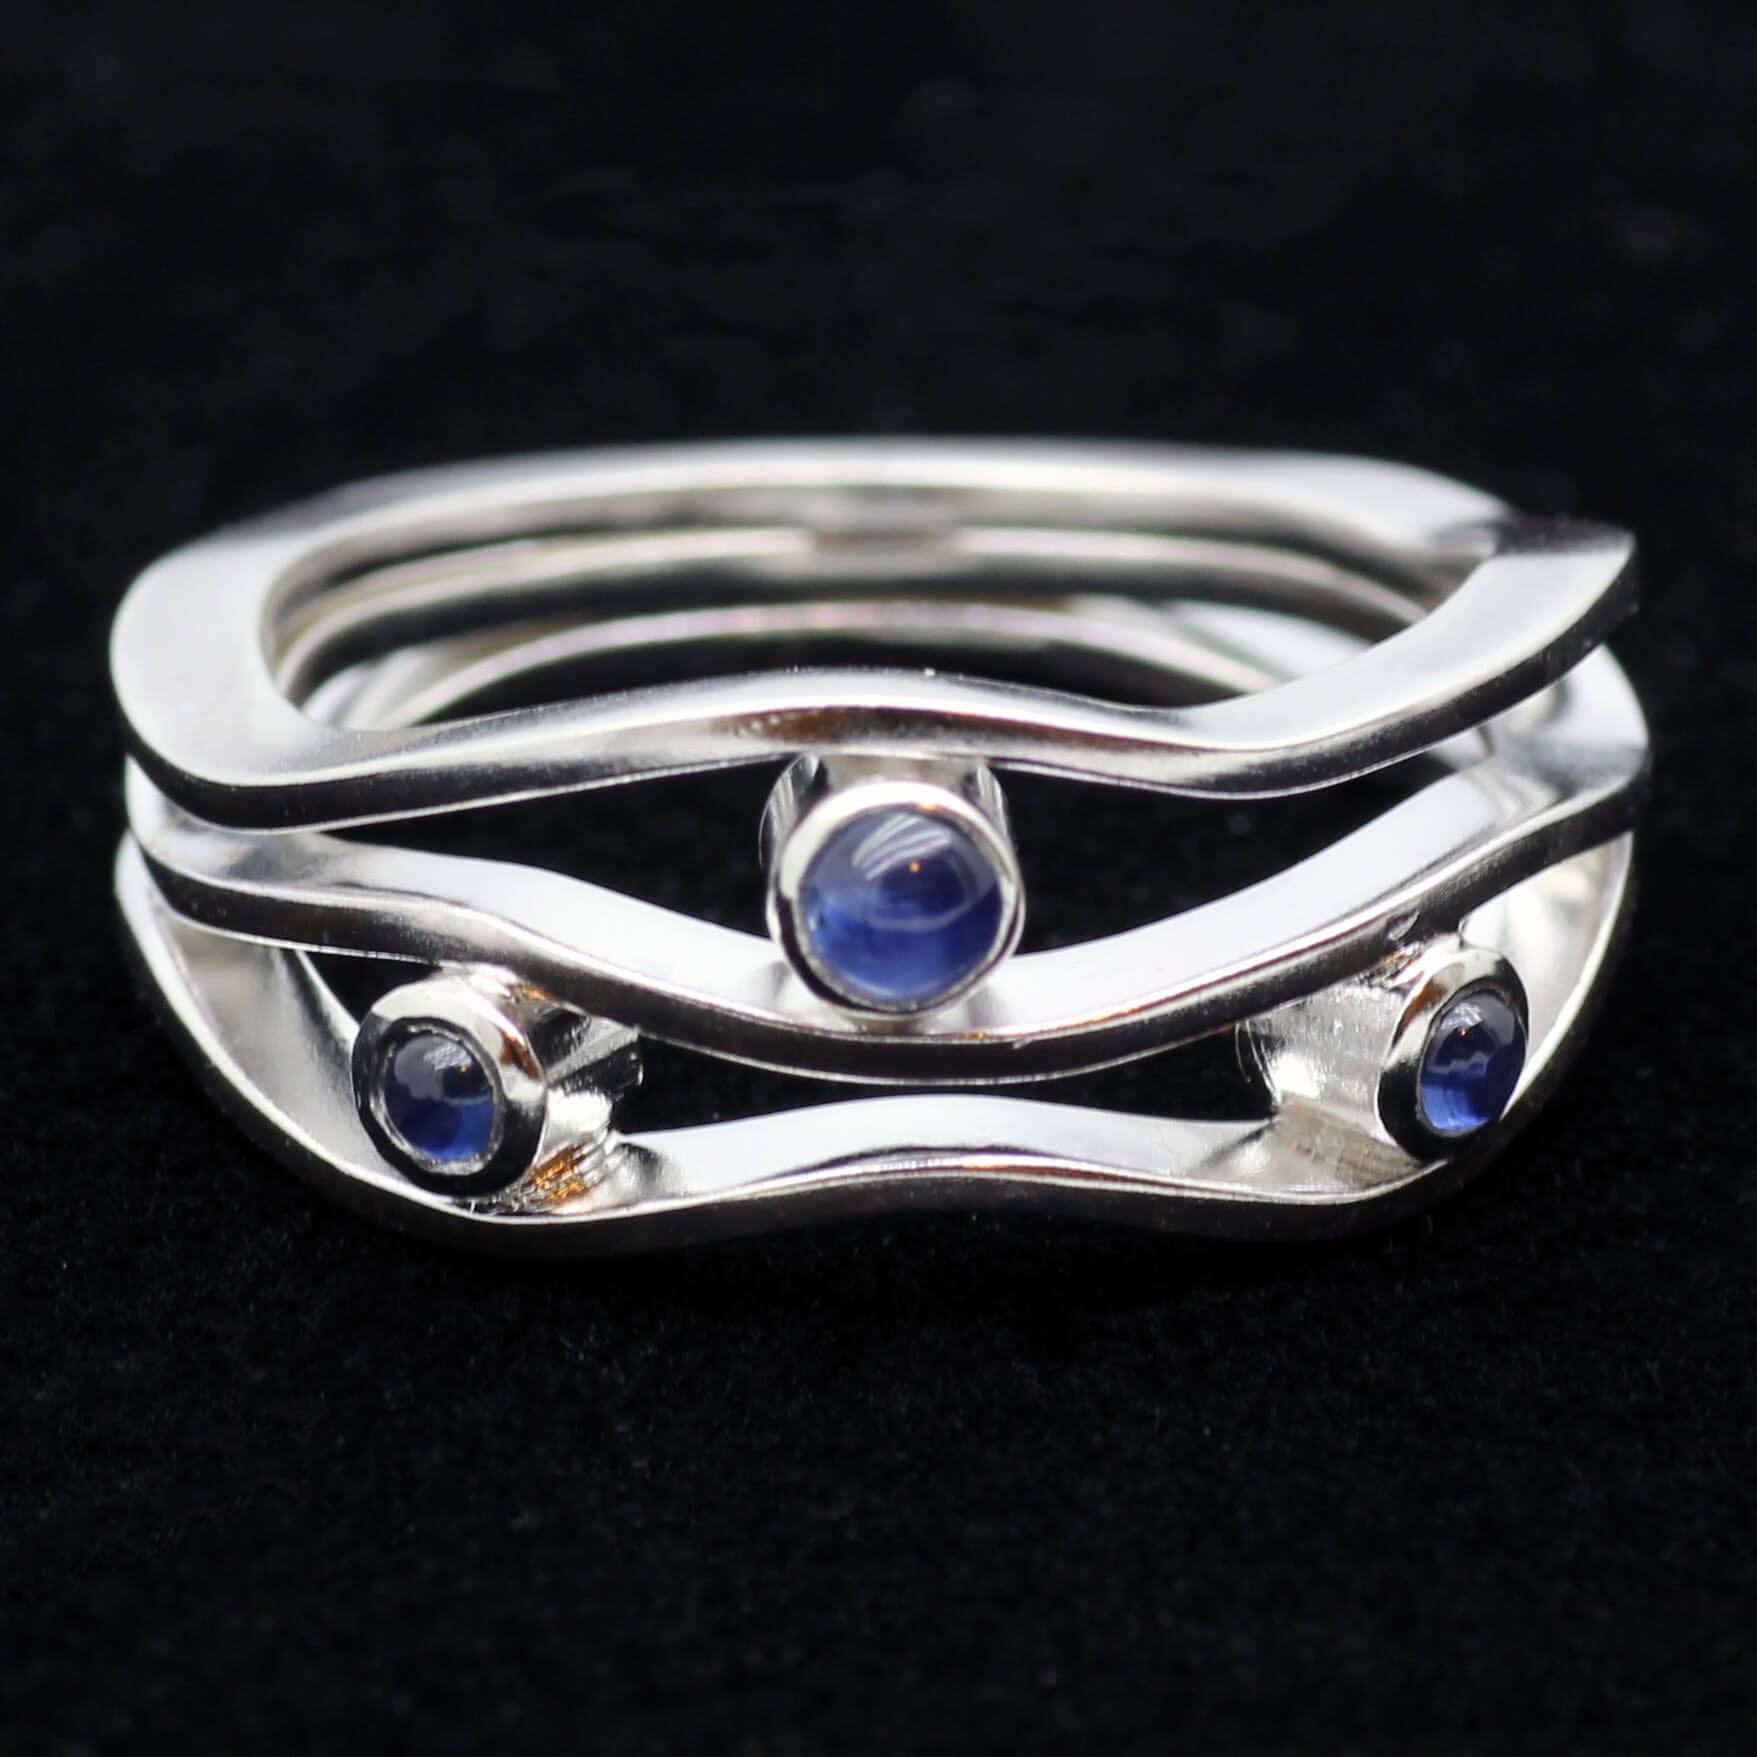 Bespoke, unique White Gold engagement ring with Sapphire gemstones